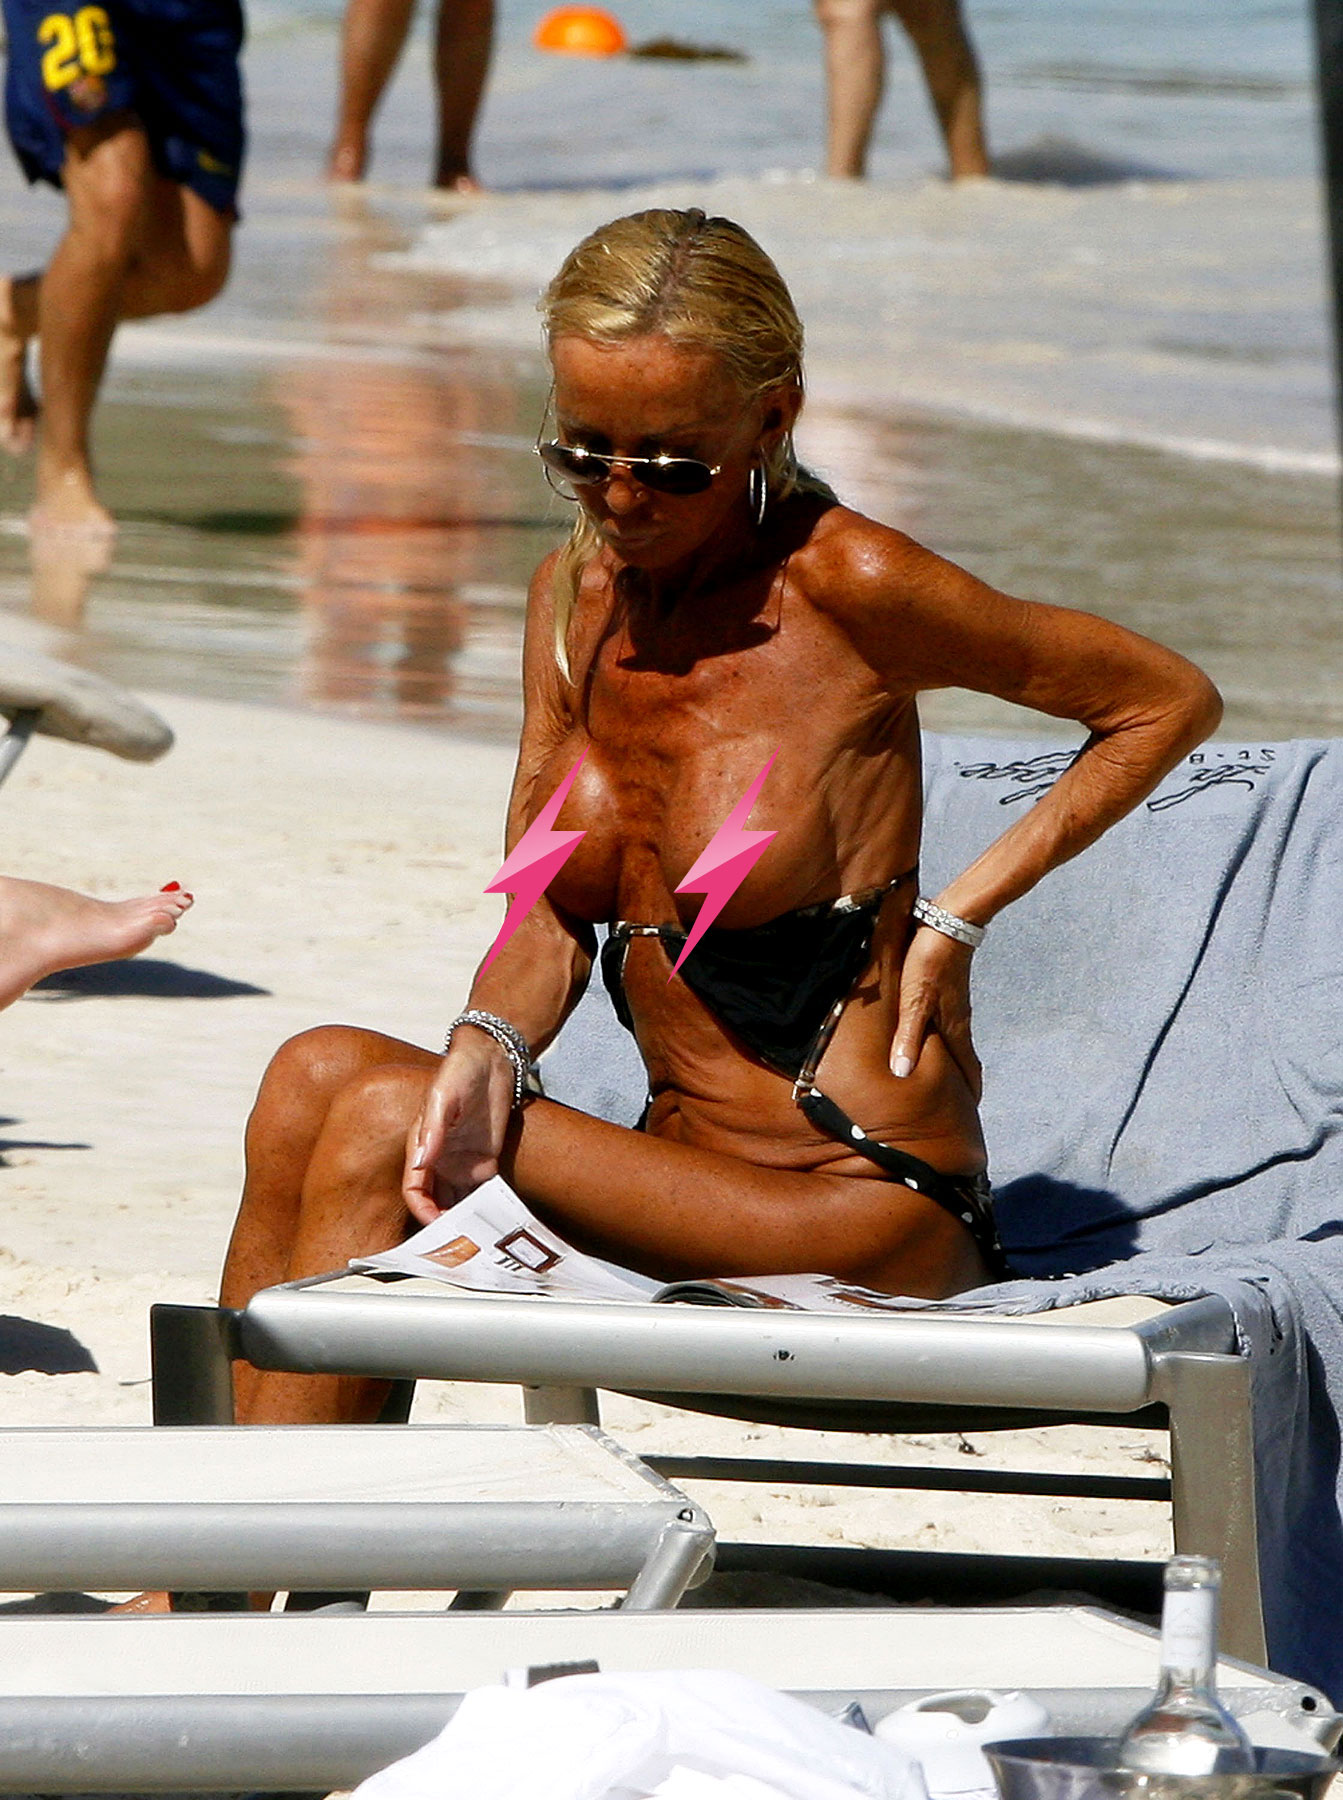 Donatella Versace Is Trying To Destroy Our Eyeballs By Sunbathing Topless (PICS)